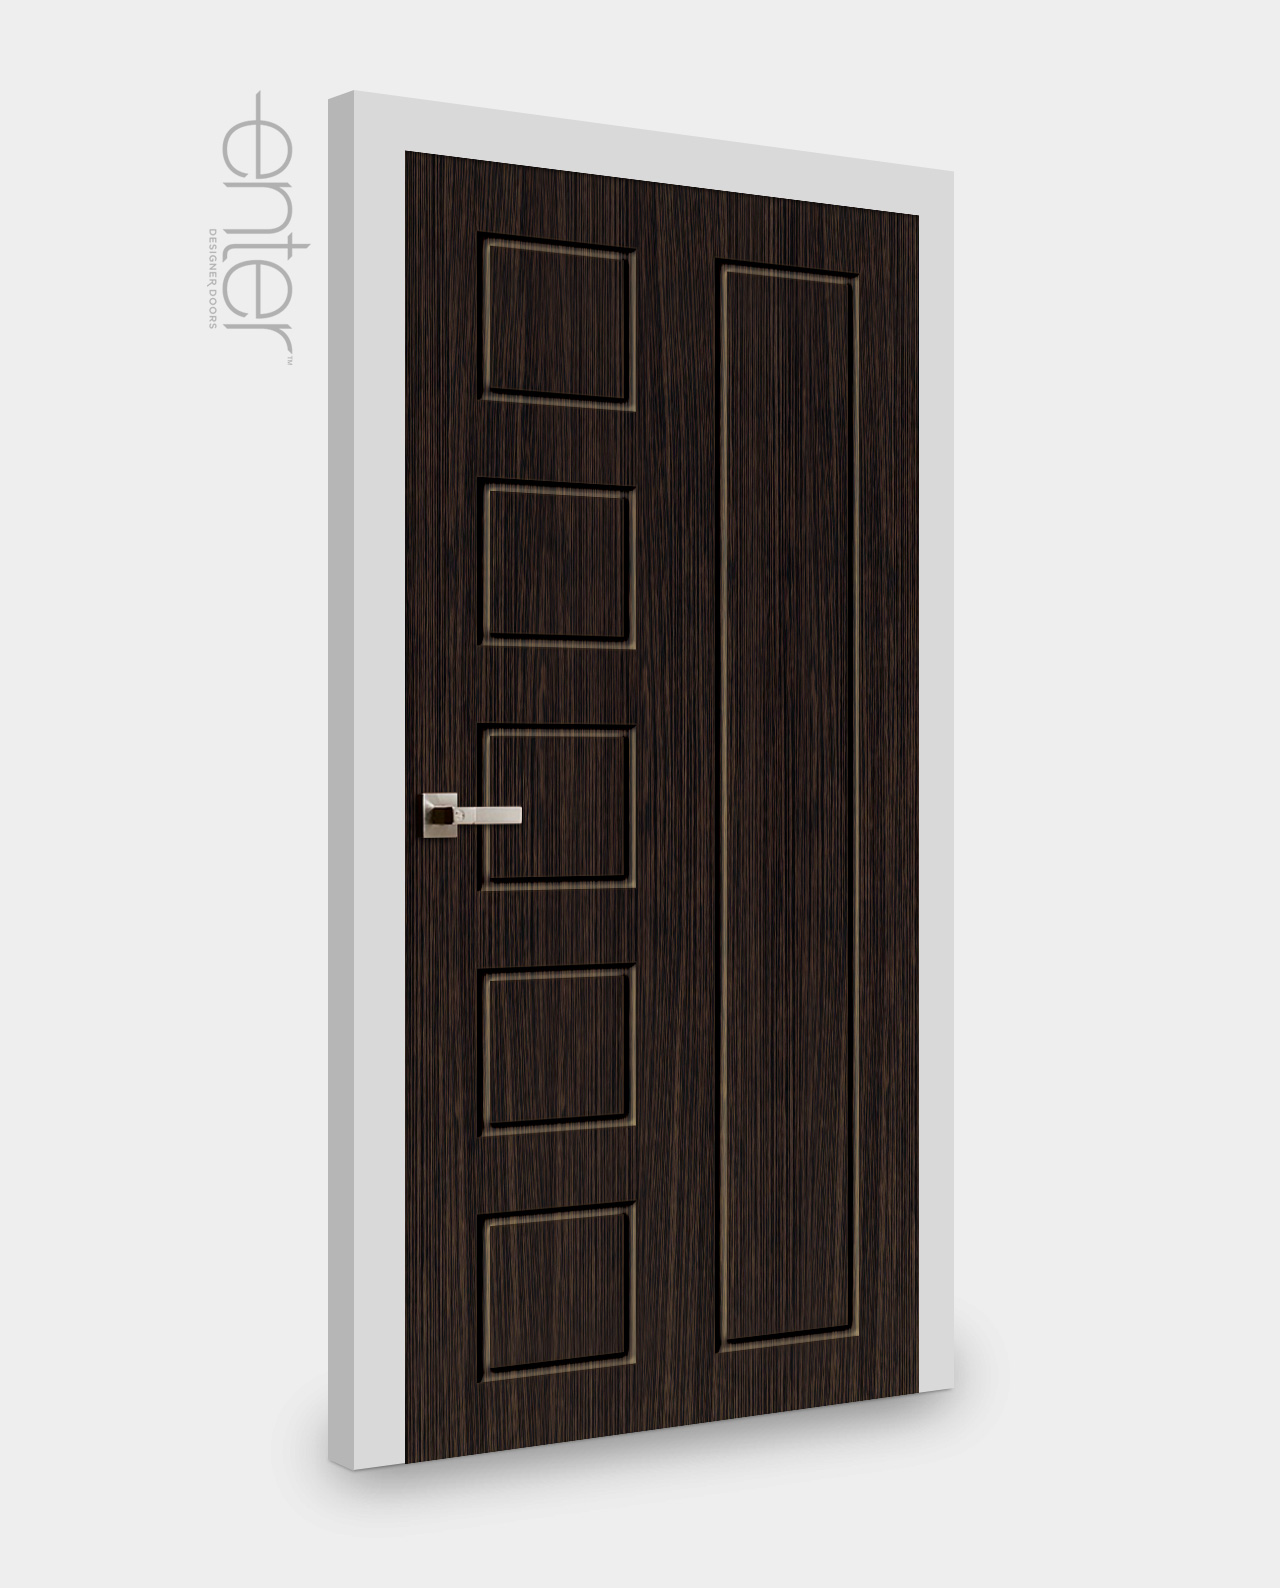 Laminated Doors In Jaipur, Membrane Door Manufacturer In Rajasthan,  Laminated Door Manufacturer, Door